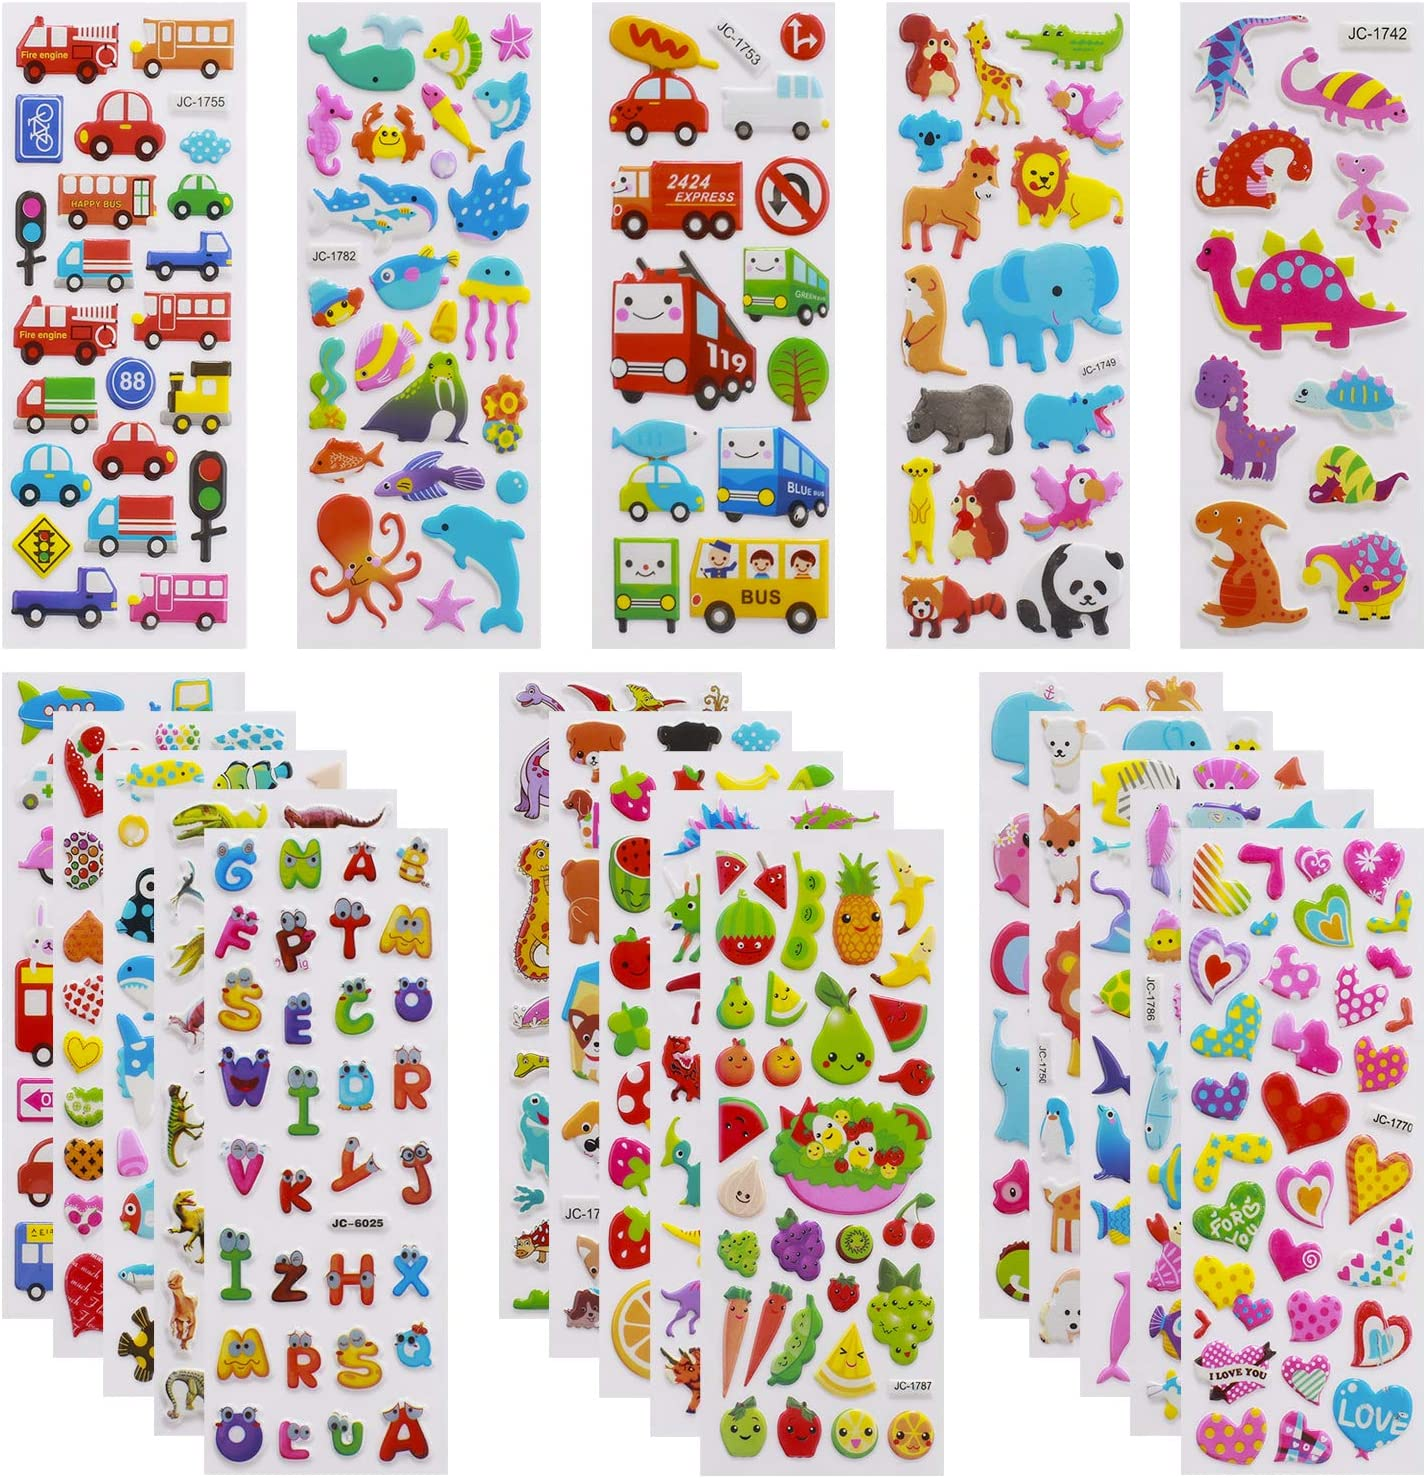 3D Stickers for Kids Toddlers Vivid Puffy Kids Stickers 24 Different Sheets Over 550 Stickers, Colored 3D Stickers for Boys Girls Teachers, Reward, Craft Scrapbooking